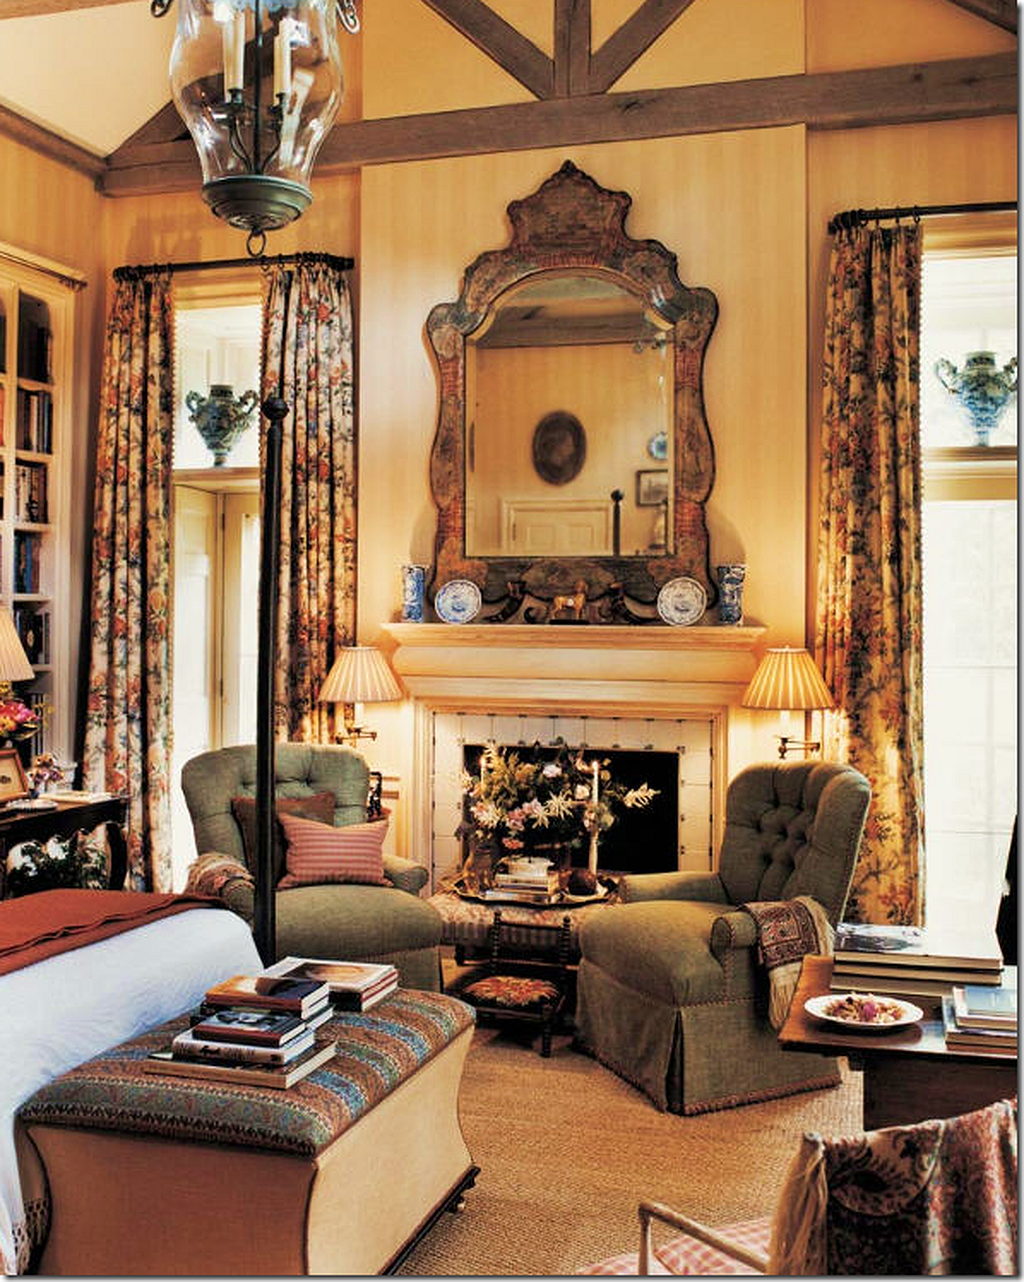 80 English Country Home Decor Ideas 19 Bedrooms